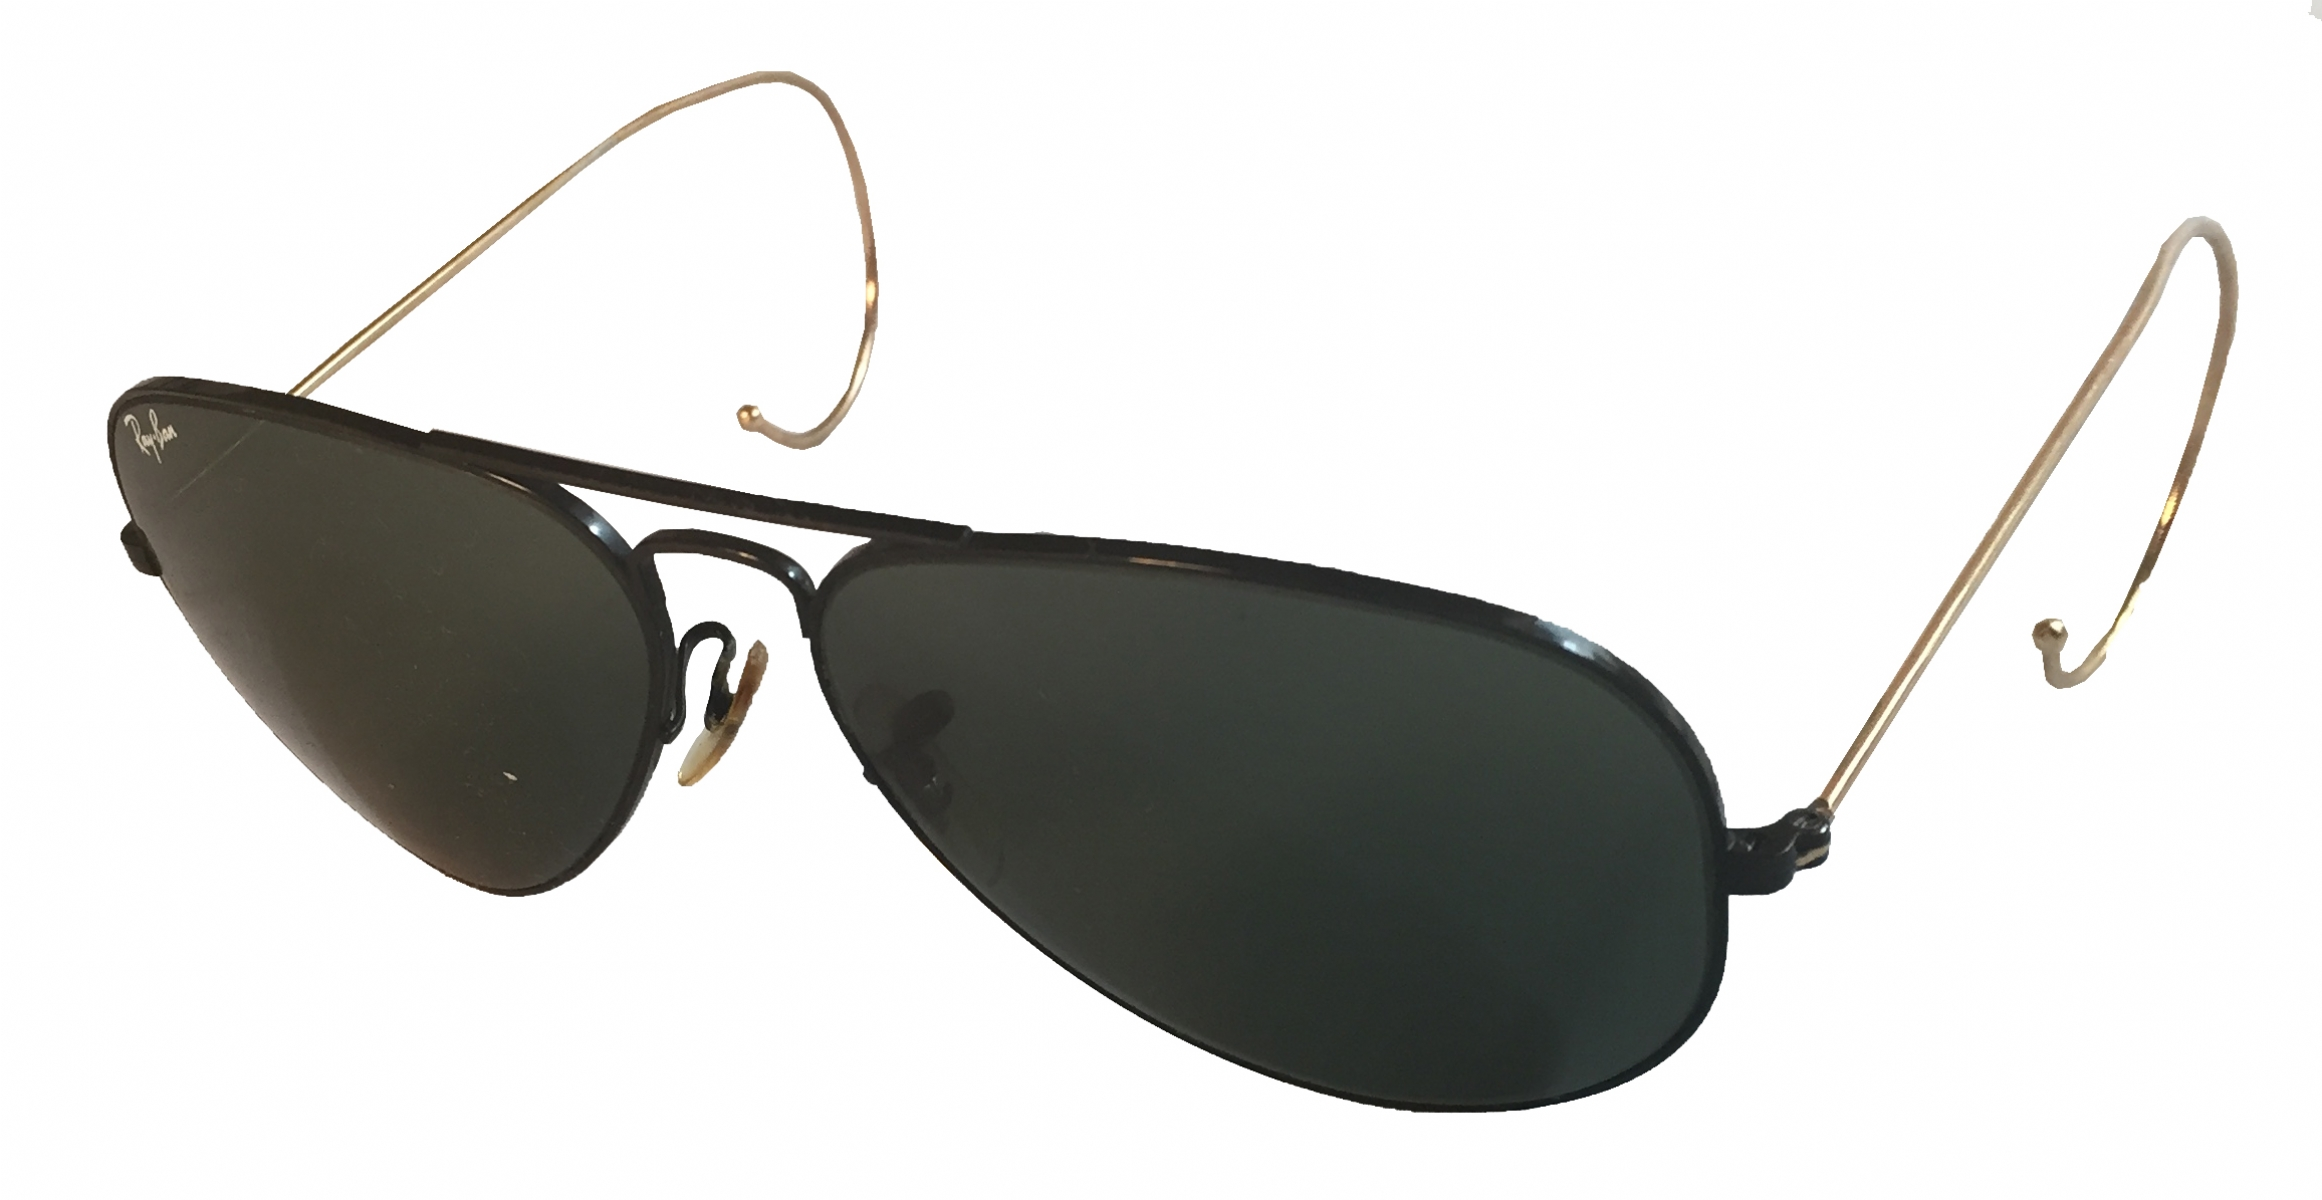 RAY BAN B&L (VINTAGE) in color 01